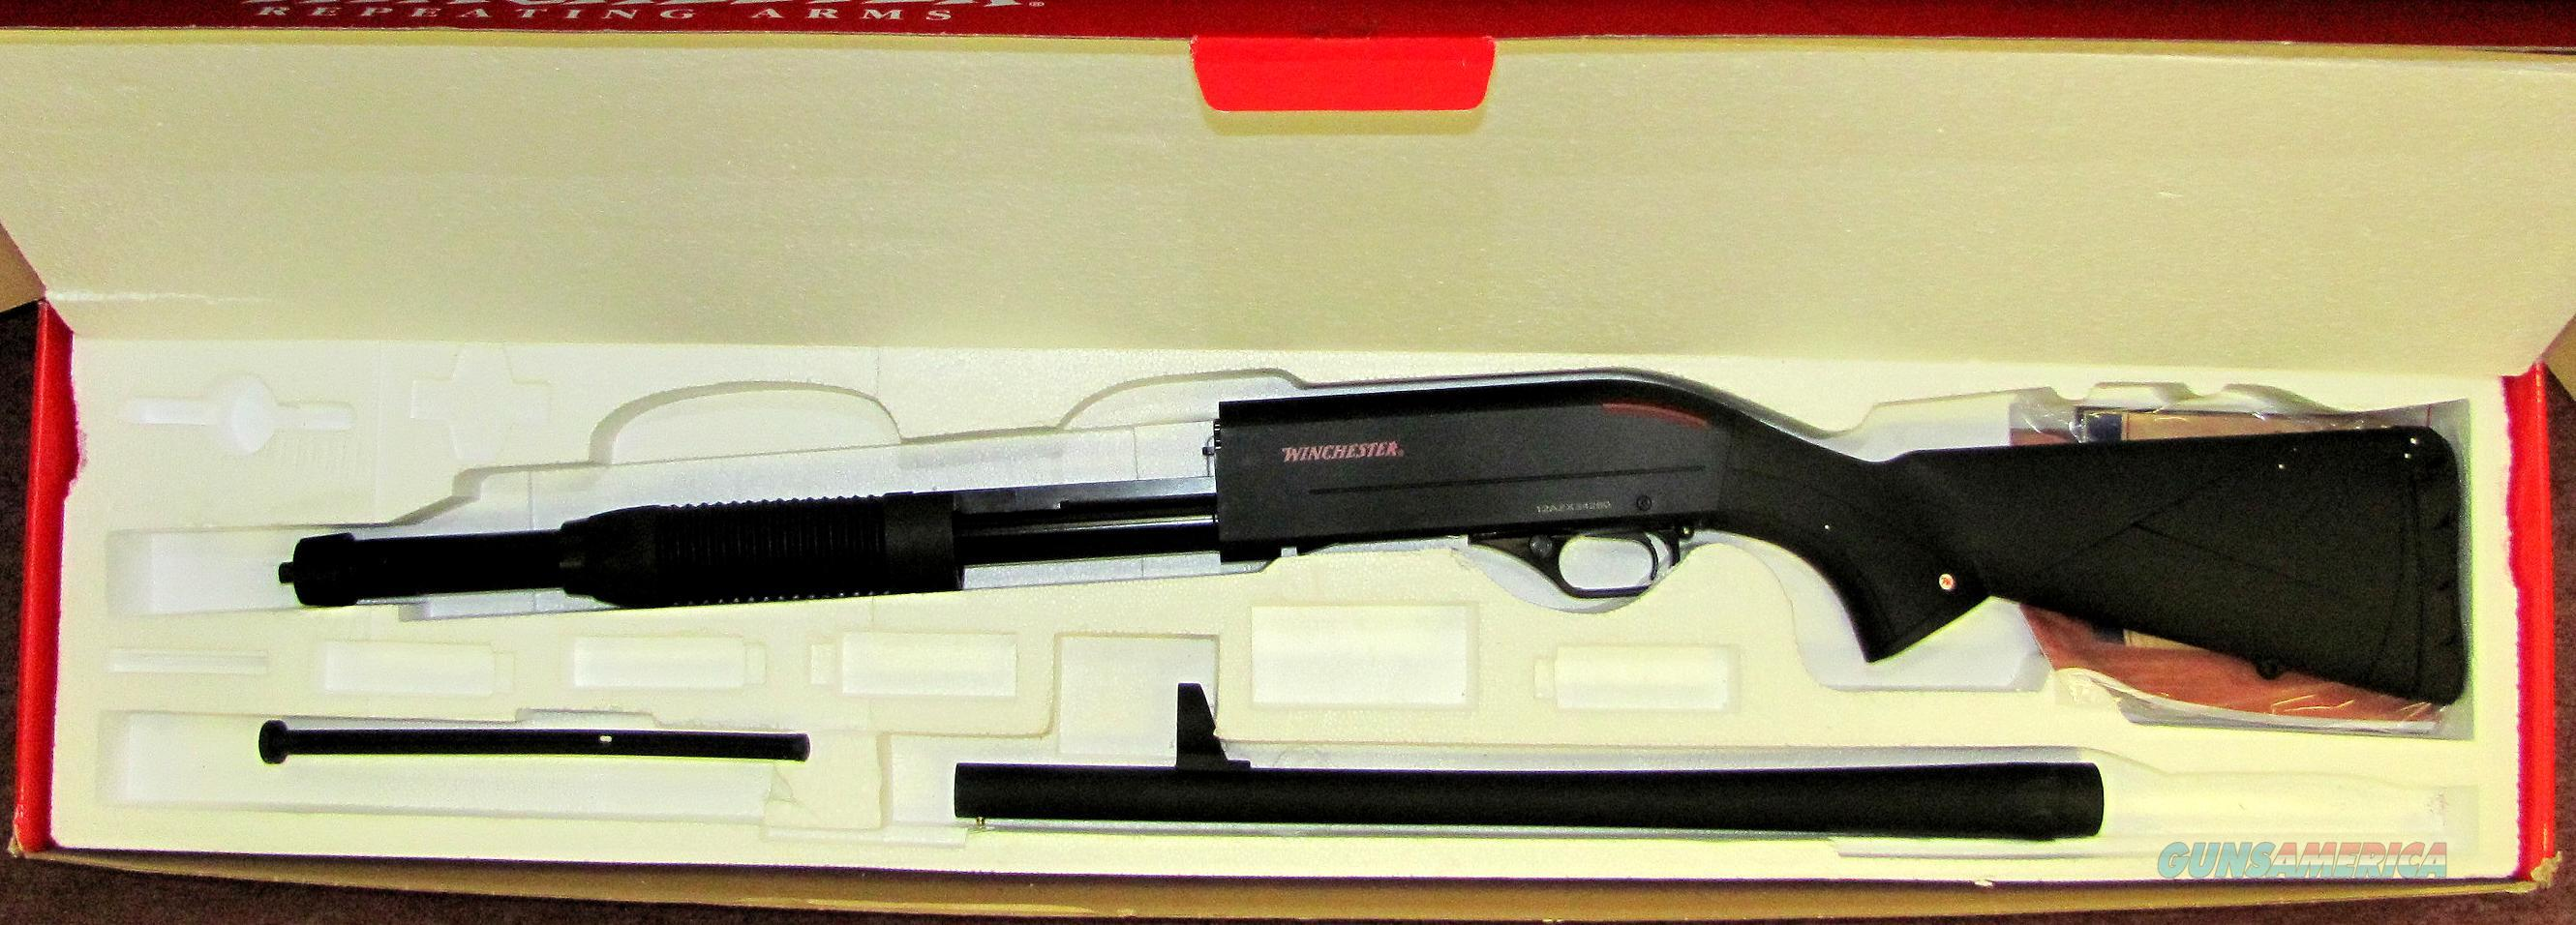 WINCHESTER SXP DEFENDER  Guns > Shotguns > Winchester Shotguns - Modern > Pump Action > Defense/Tactical